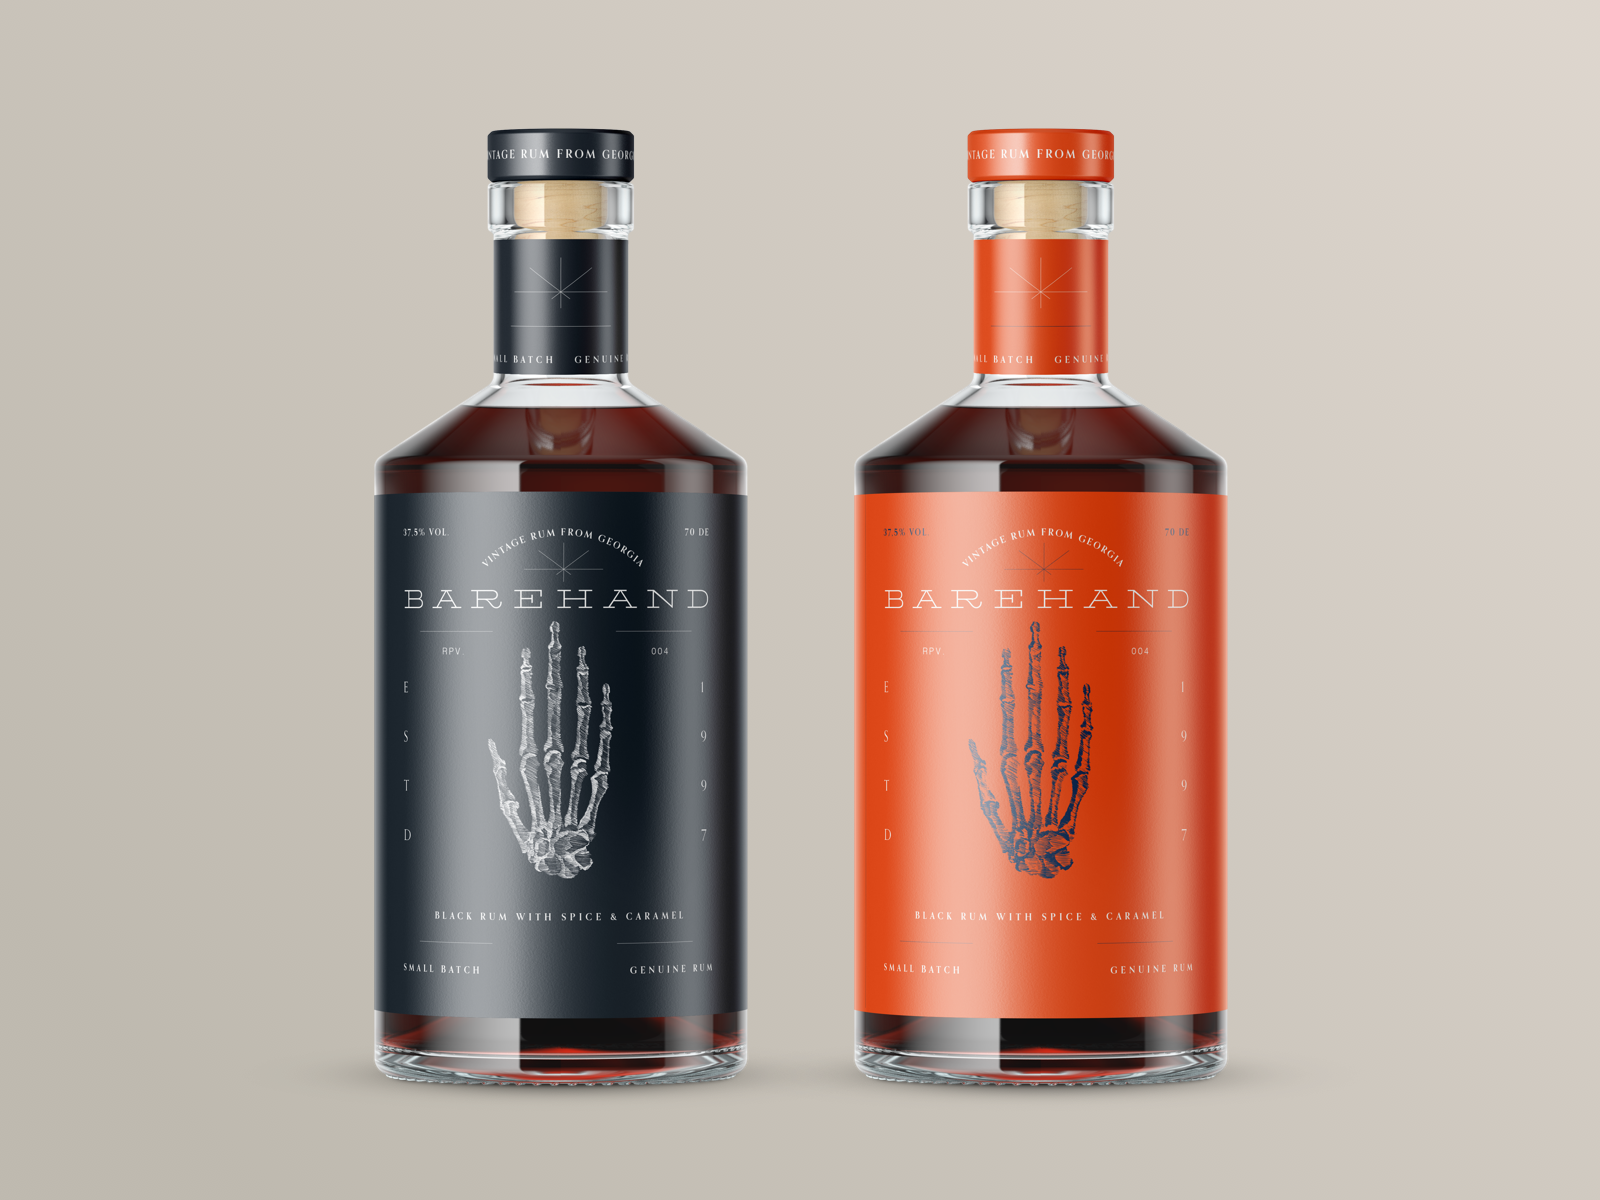 BoldMonkey Creates New Label Design for Barehand Rum